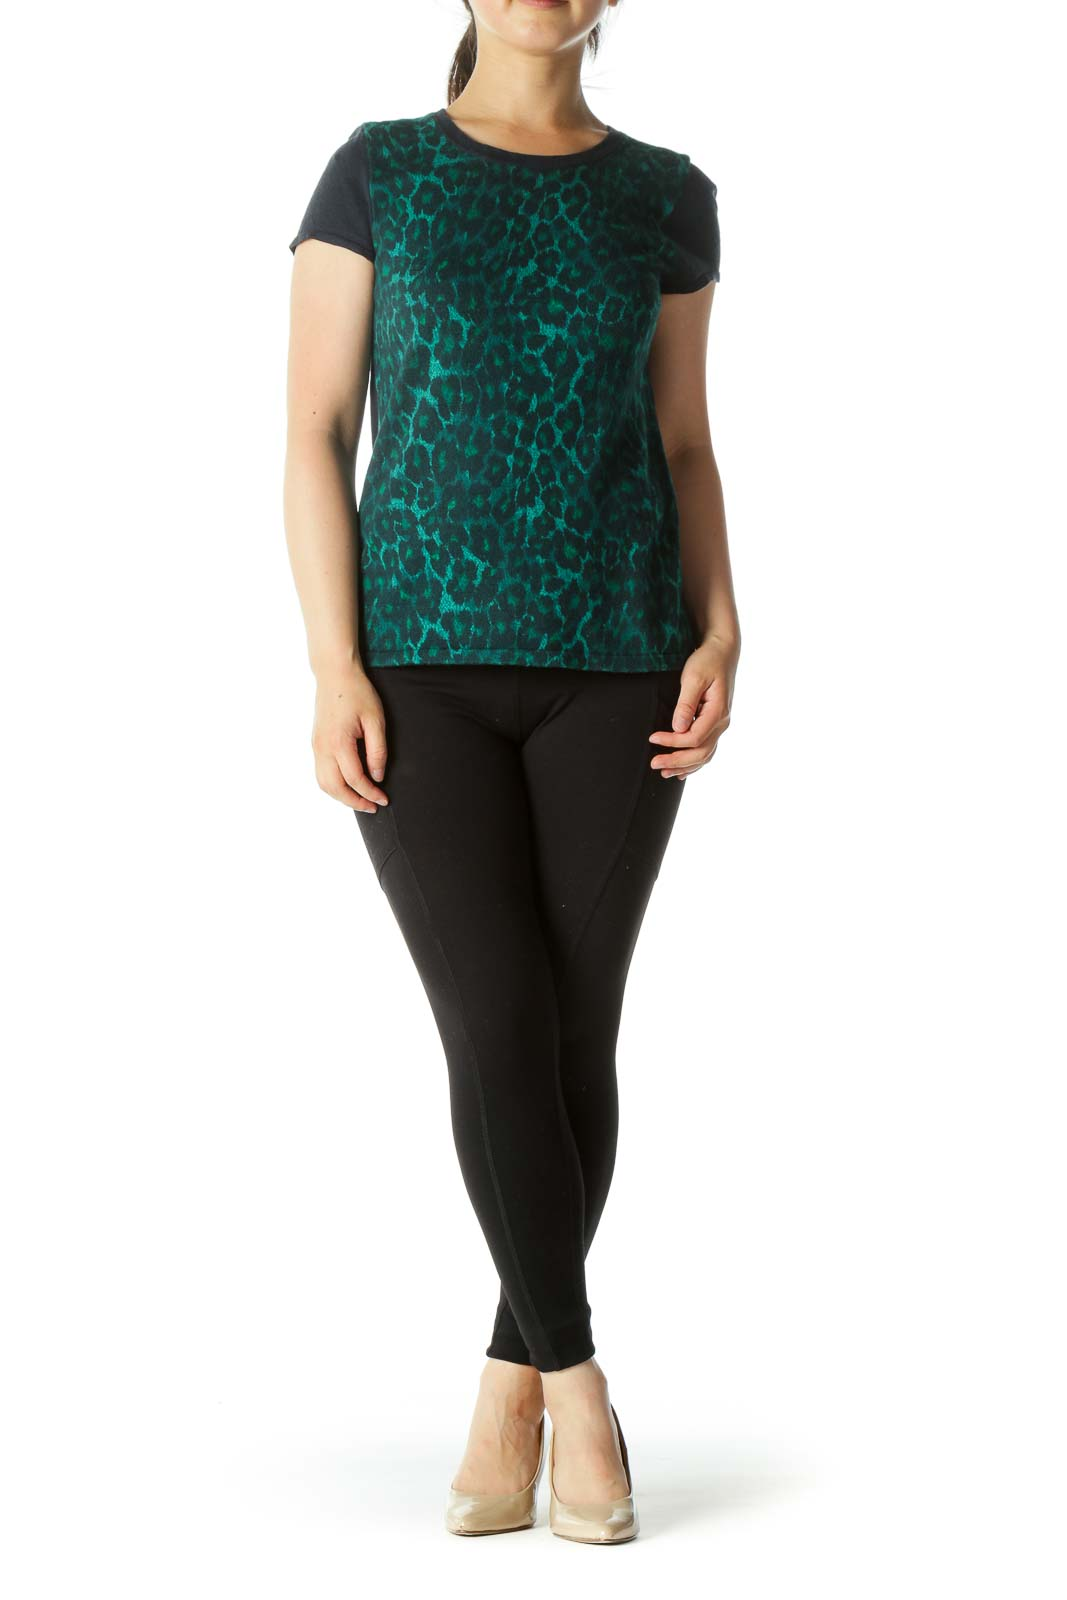 Green and Navy Animal Print Knit Top